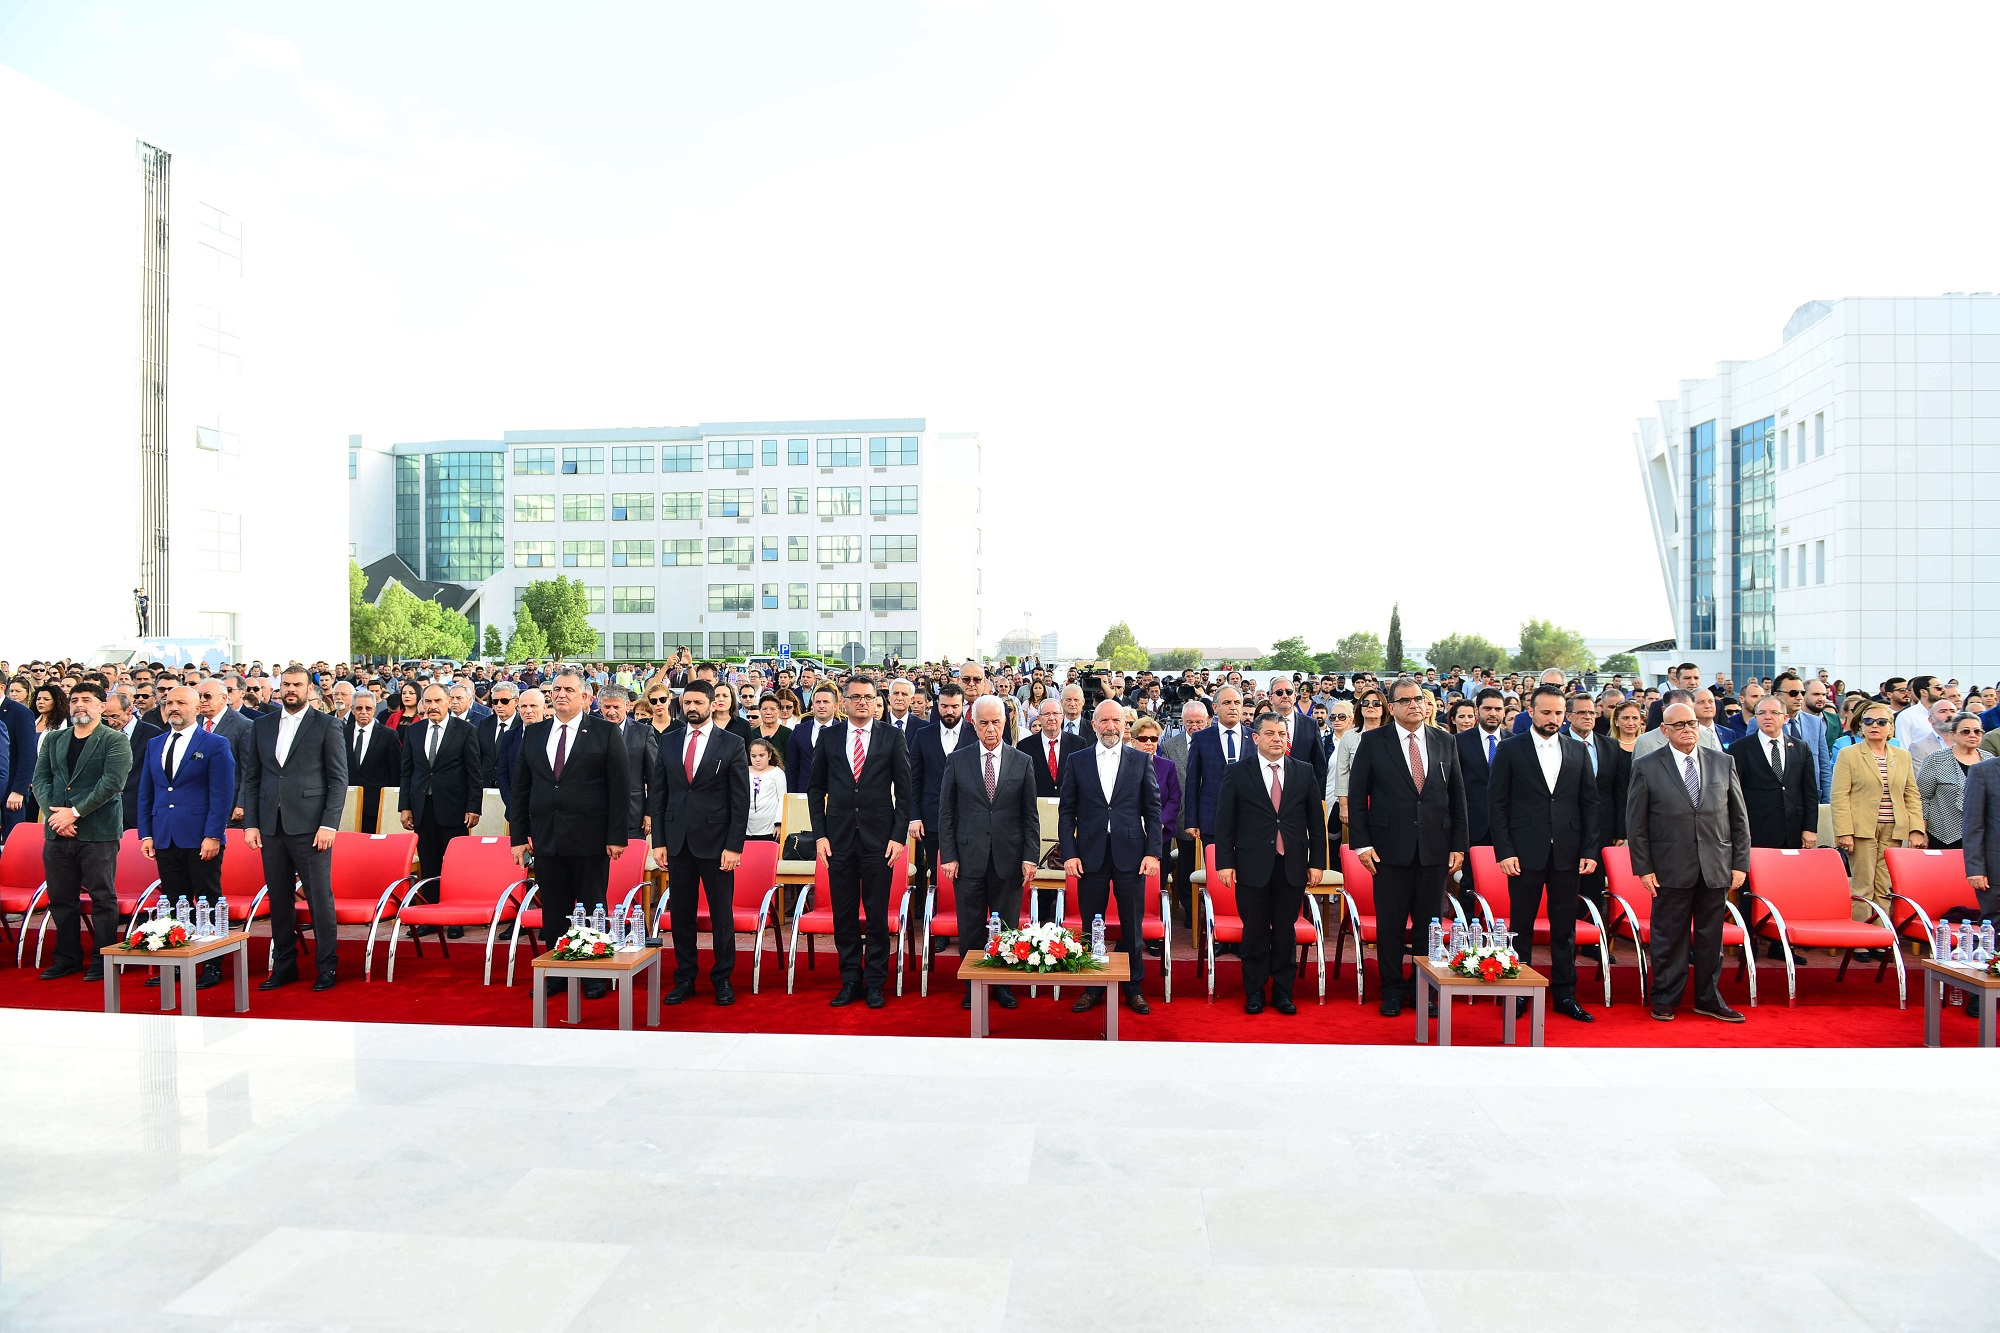 Near East University's New Building of the Faculty of Health Sciences and İrfan Günsel Congress Center opened with a Grand Ceremony